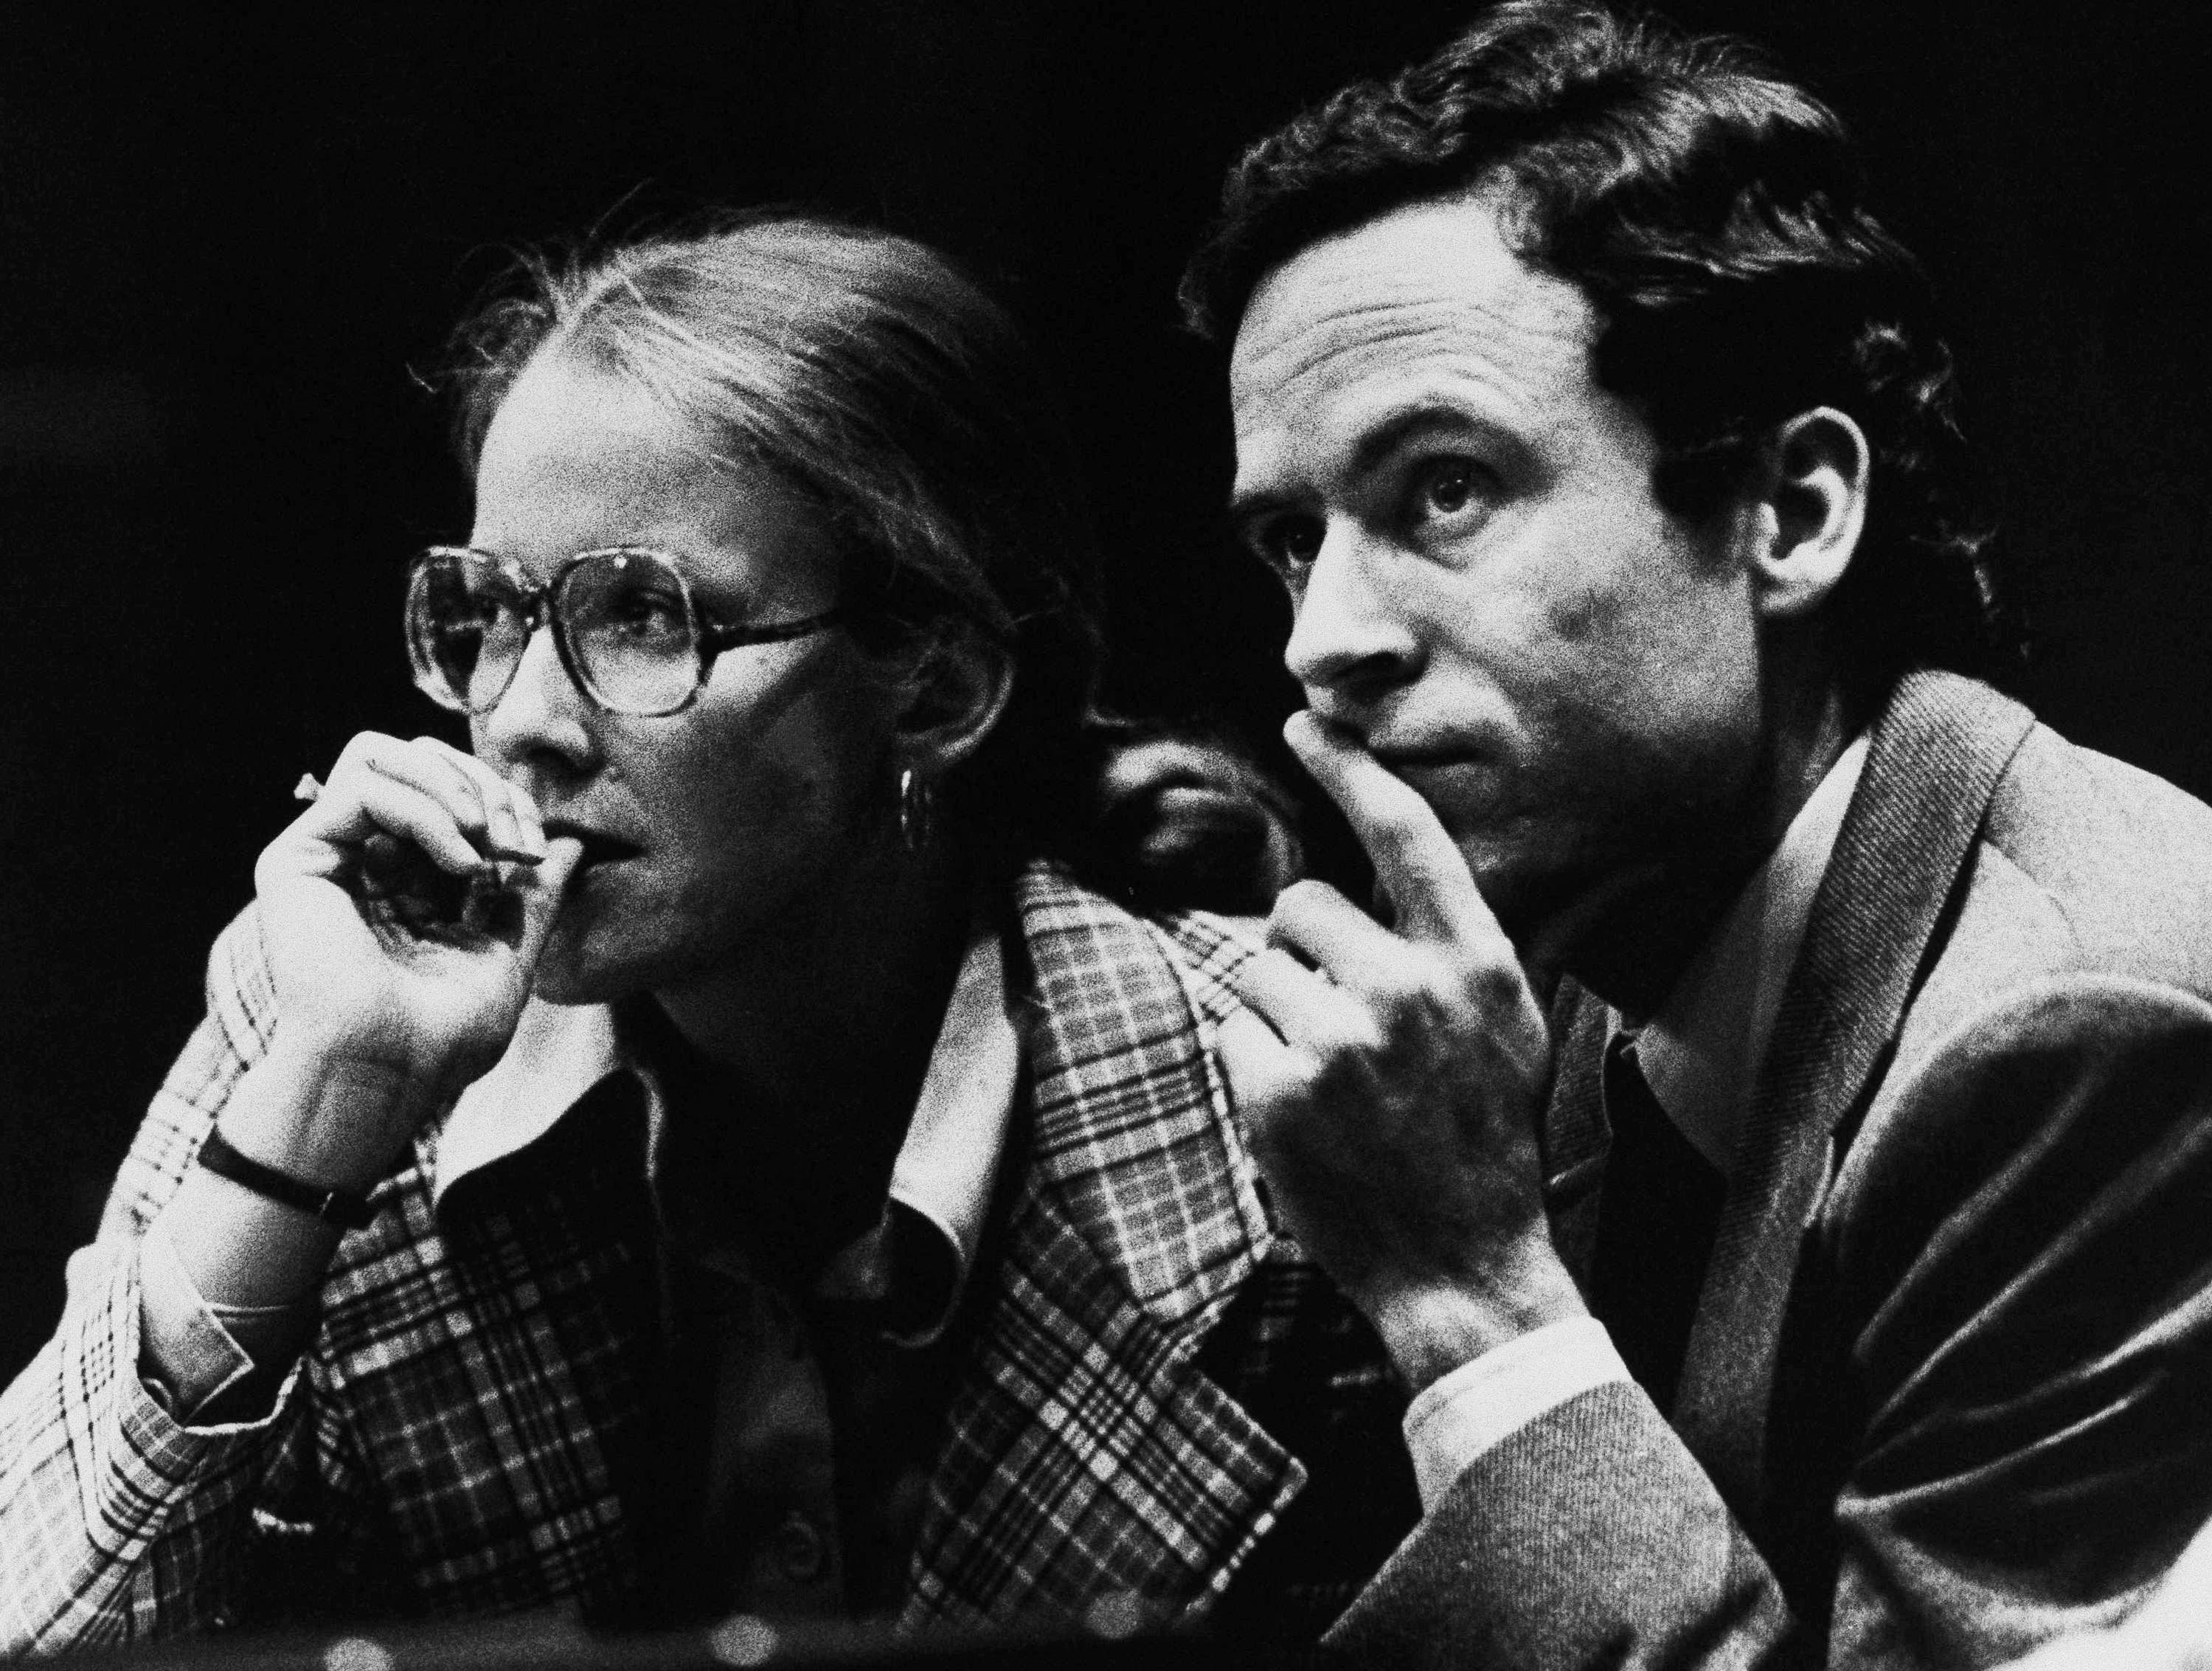 Theodore Bundy and his attorney Margaret Good wait for the jury to read the verdict in his pre-sentencing hearings, July 31, 1979 in Miami, following his conviction for the murders of two Florida State sorority sisters in 1978.  The jury returned with a death sentence which will be decided on by Judge Edward Cowart when he makes his sentencing.